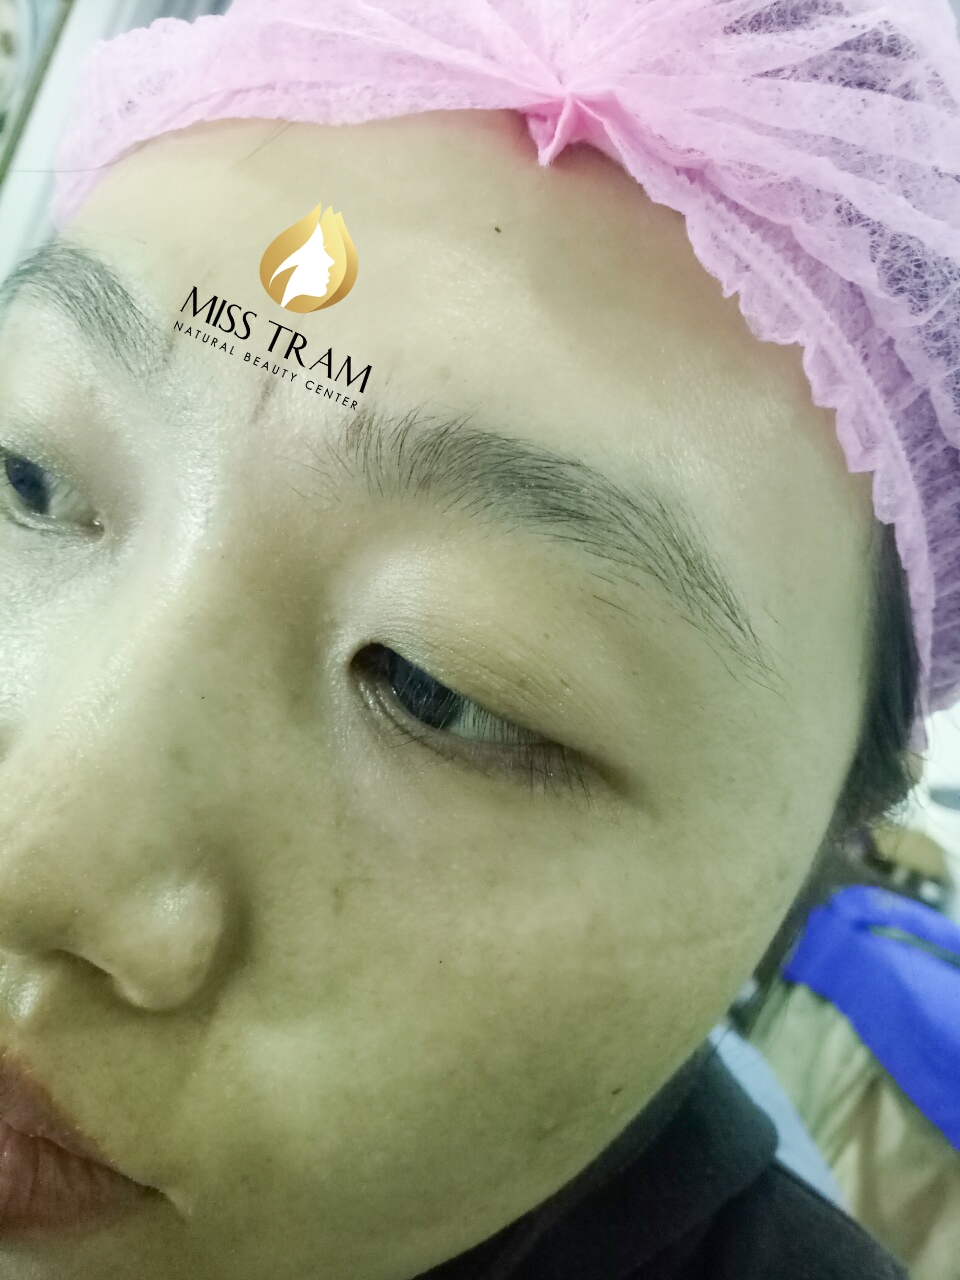 Results Before And After Sculpting Eyebrows With 9D Yarns For Women 2